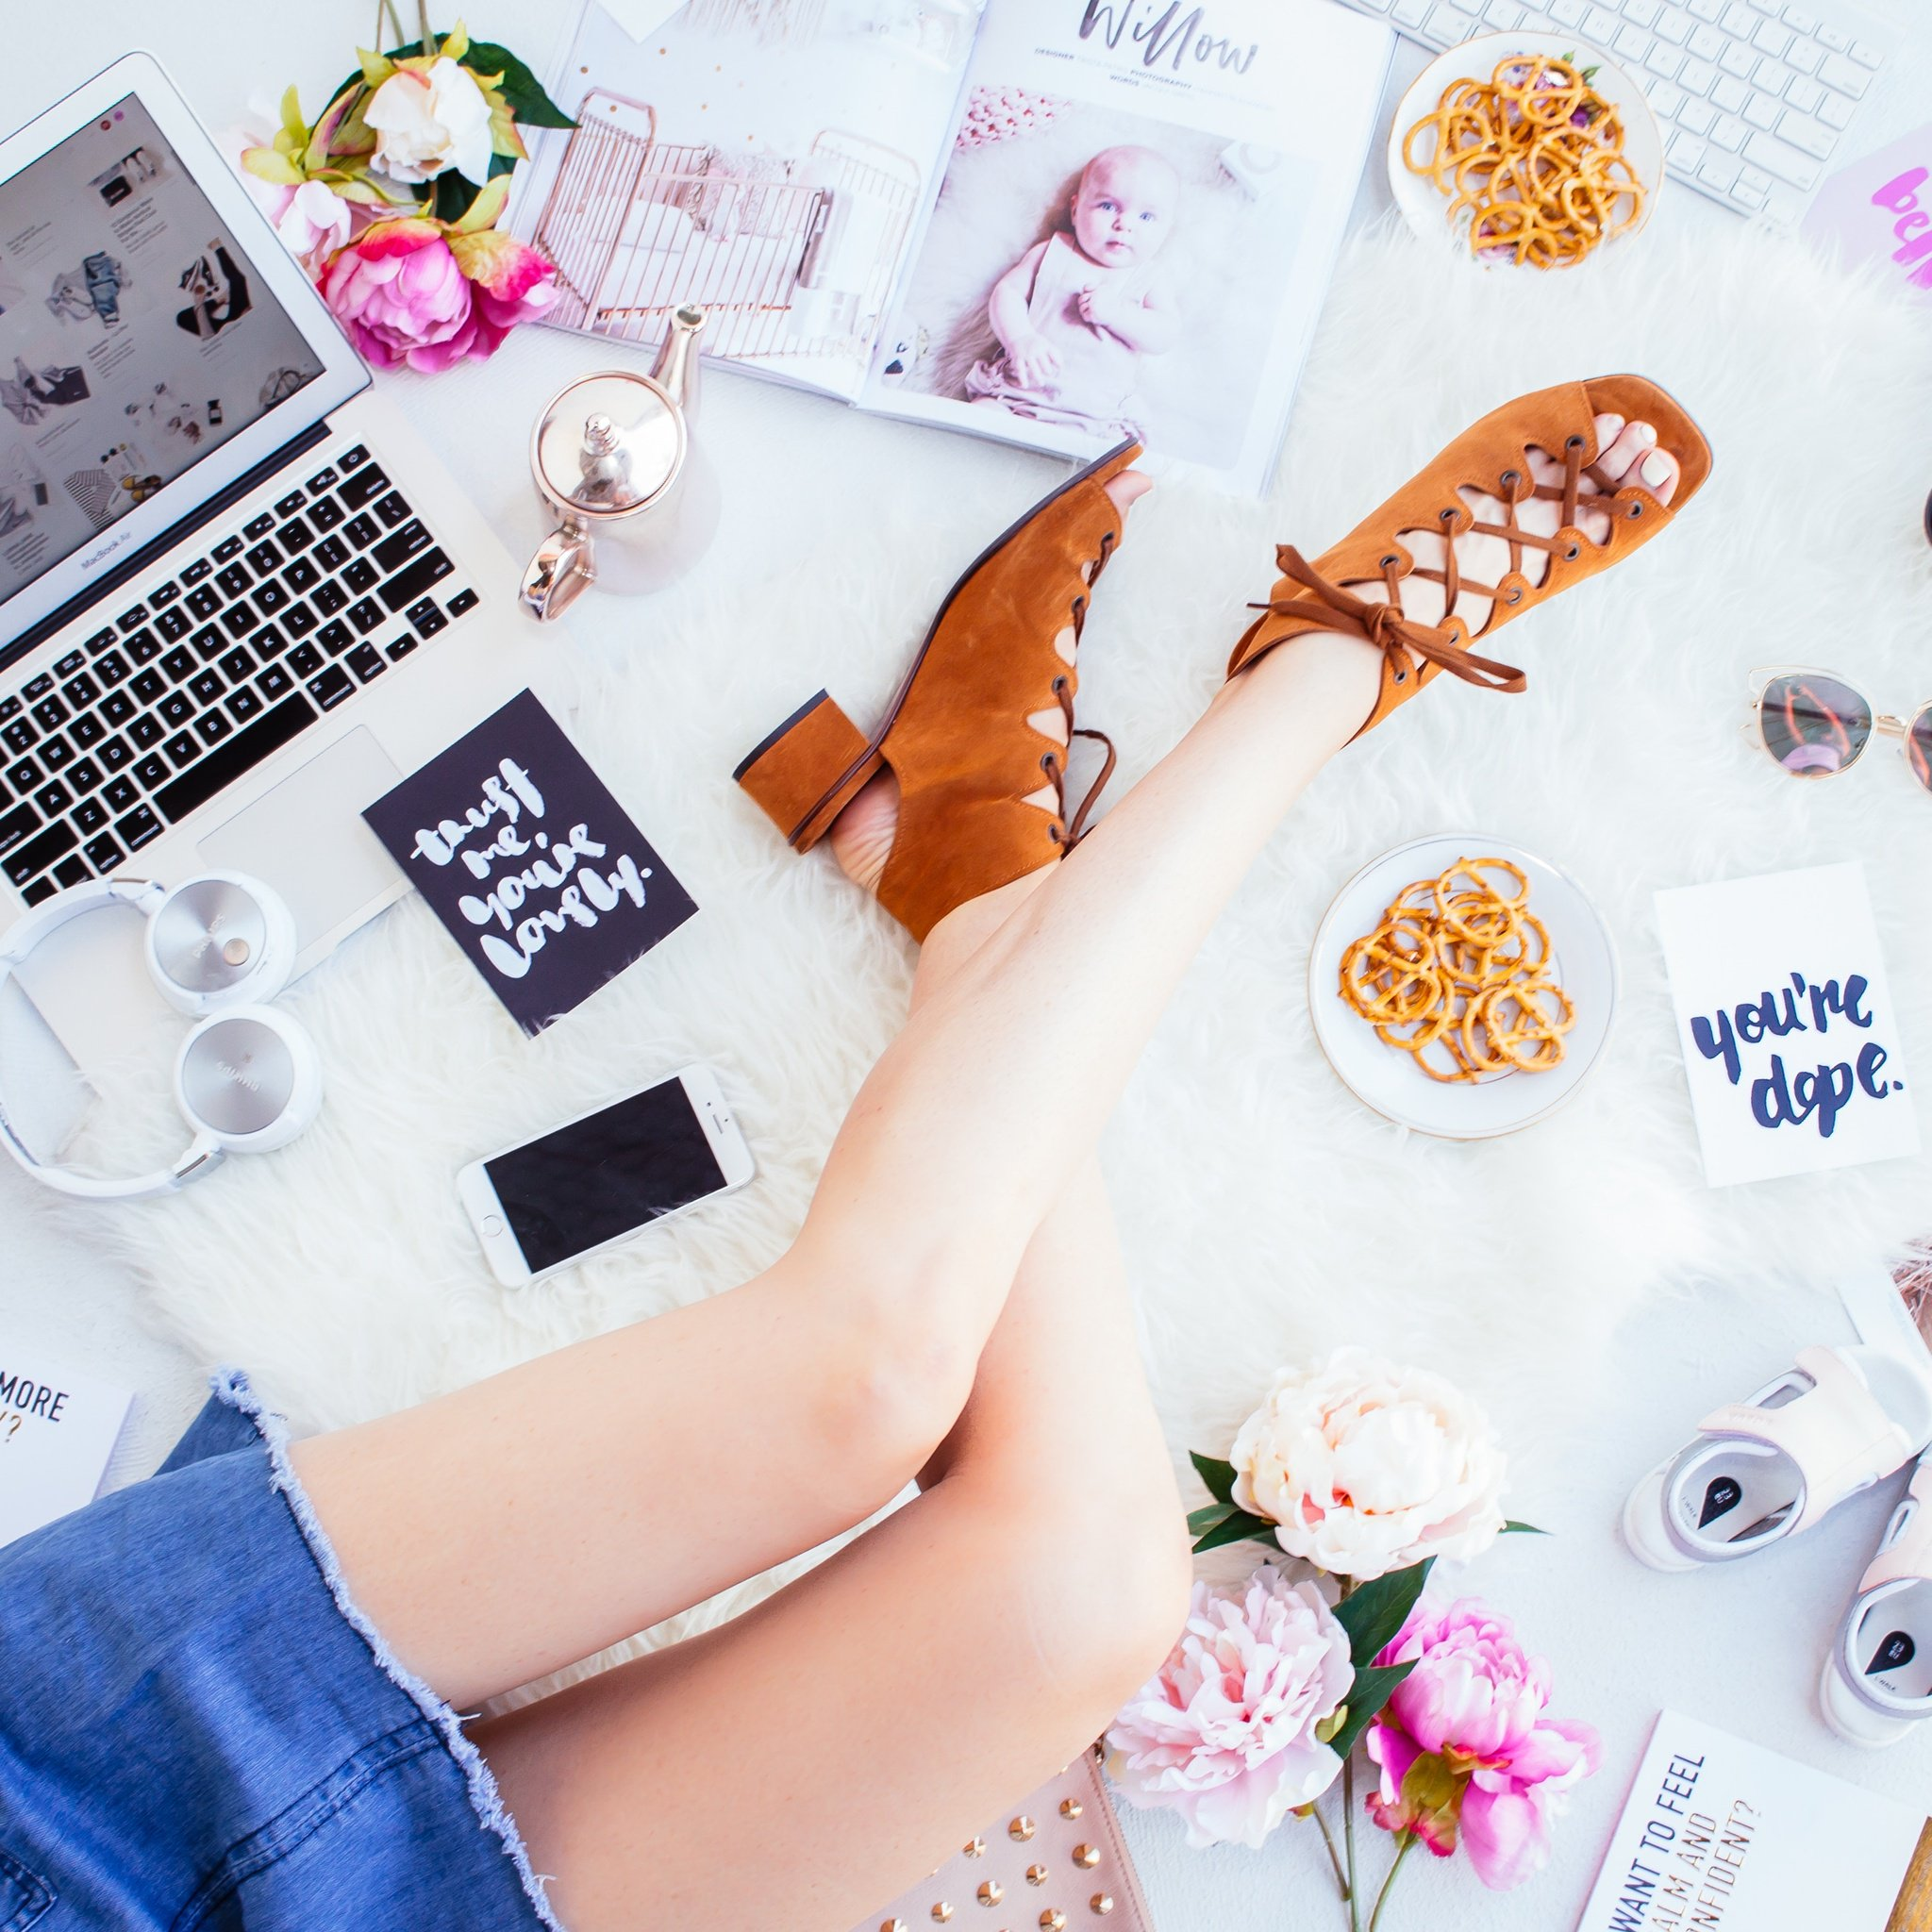 Micro-influencer or brand ambassador: which offers the bigger payoff?